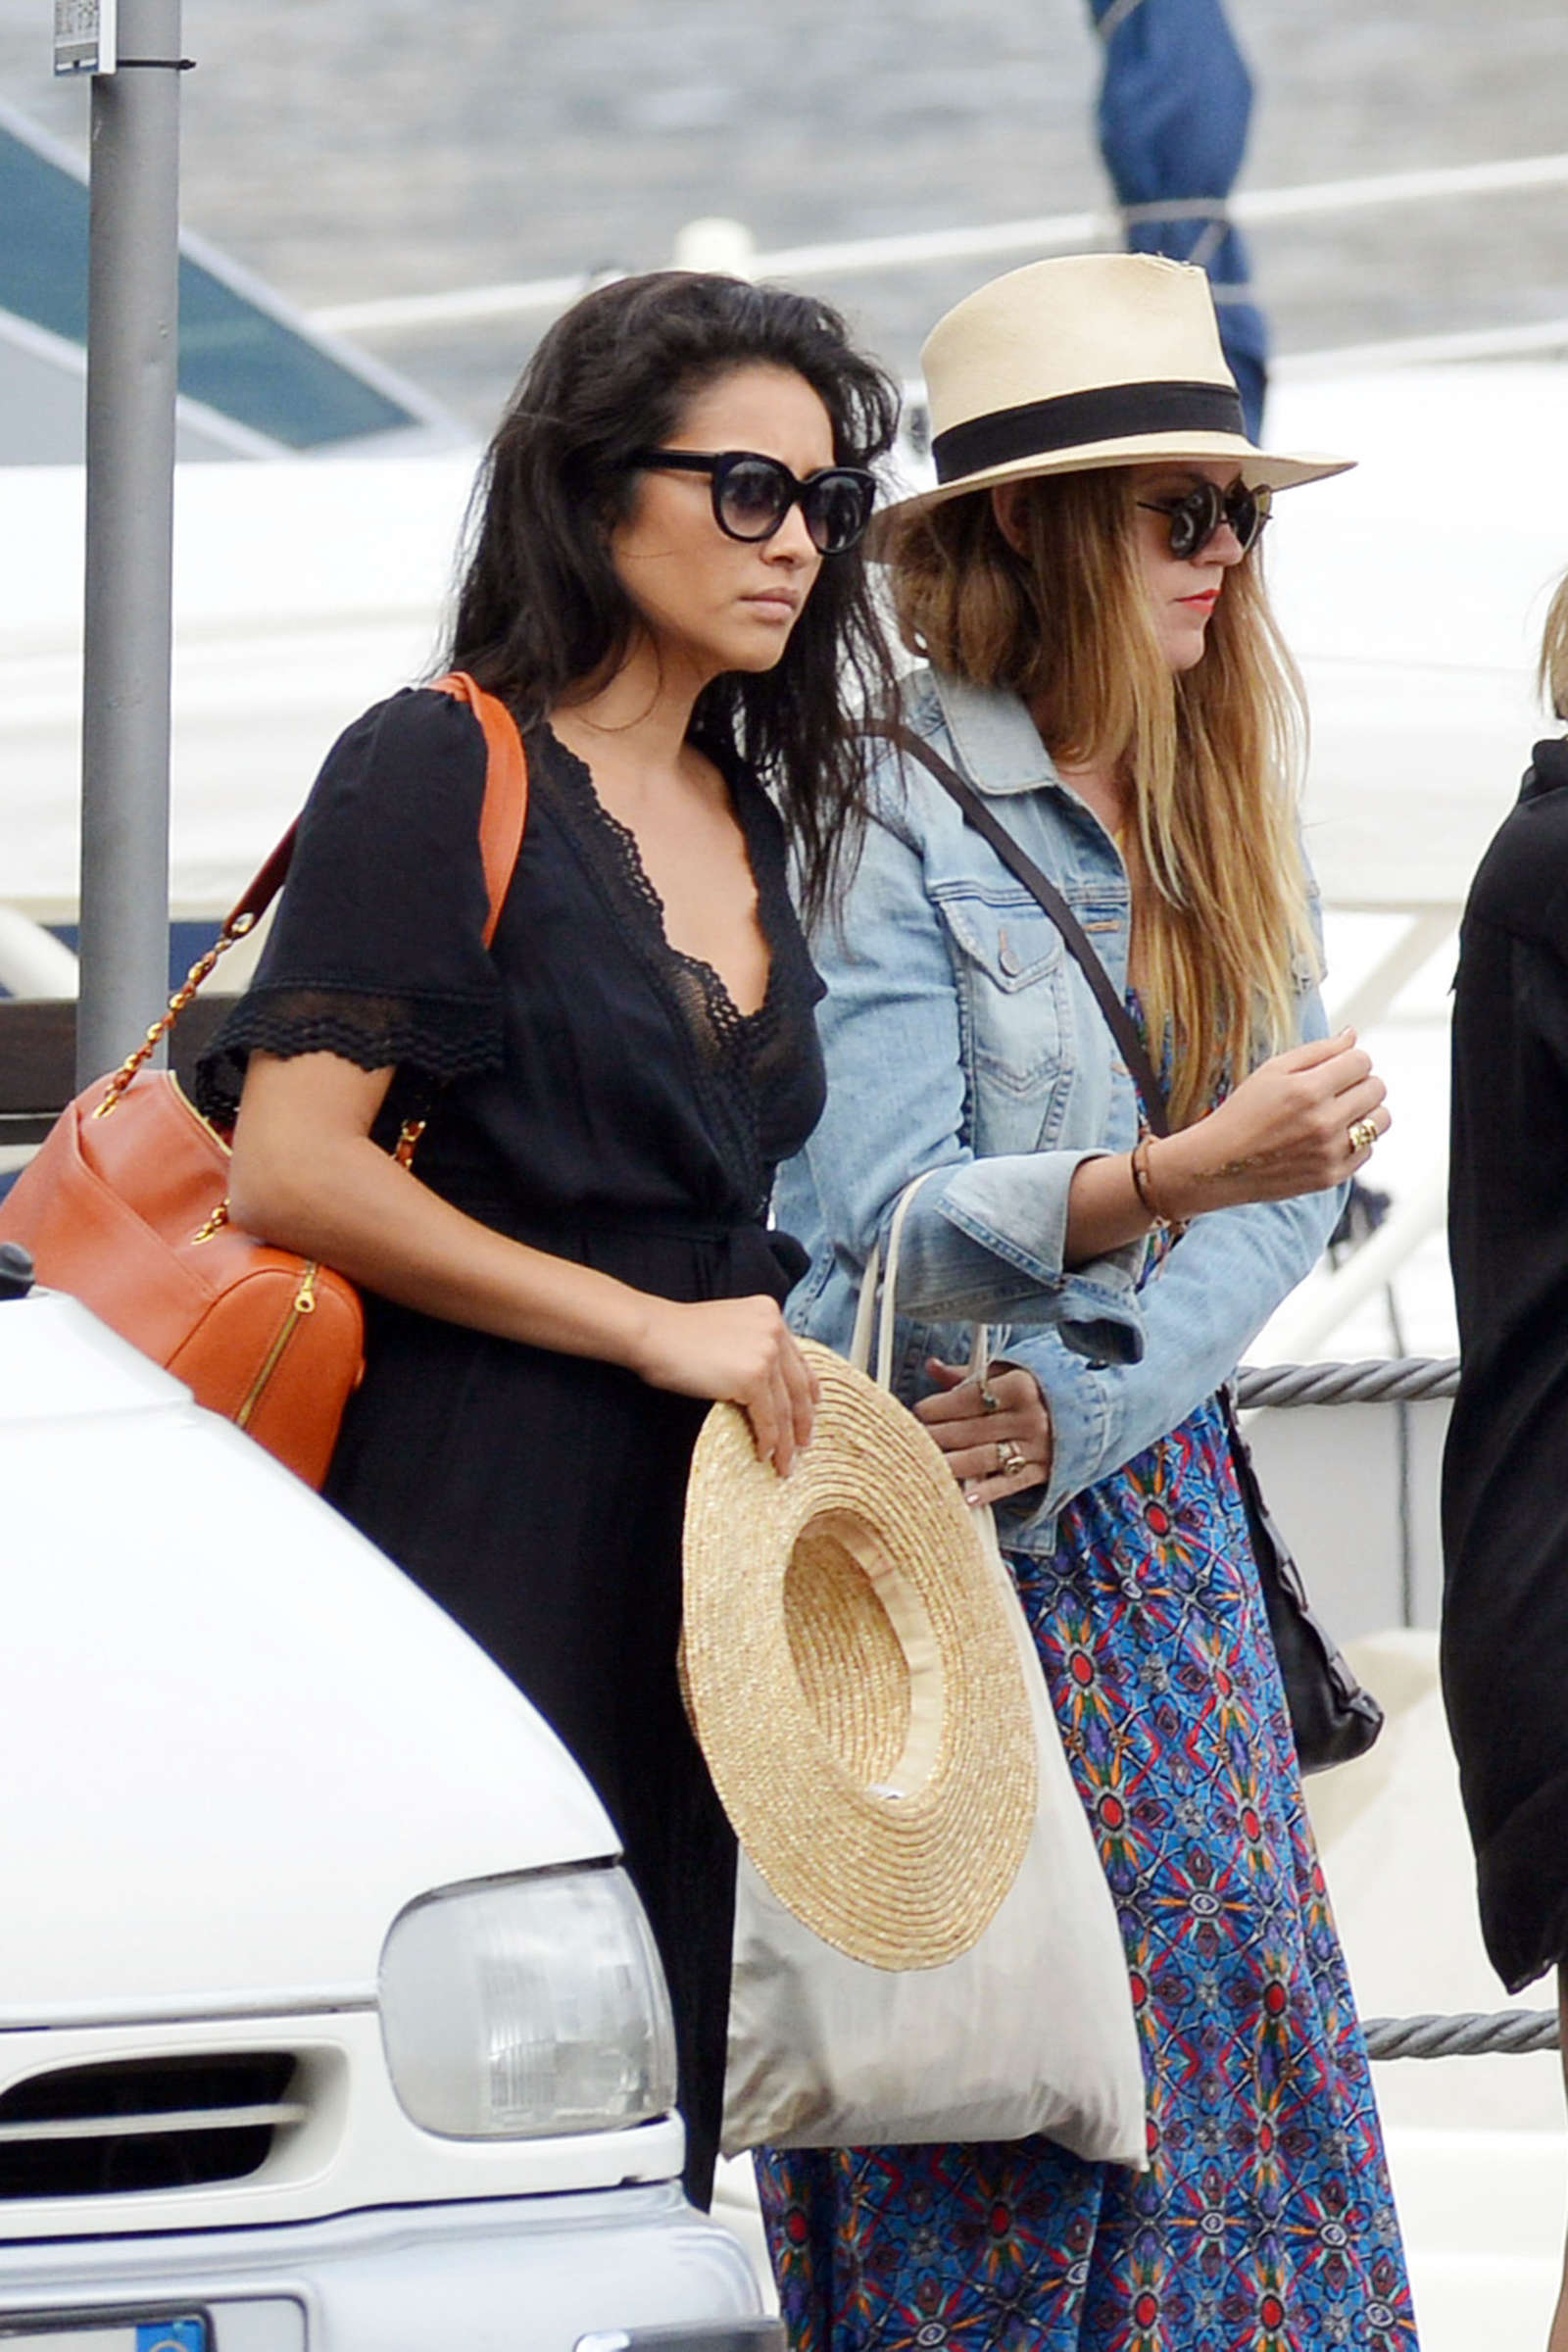 Ashley Benson 2016 : Ashley Benson, Shay Mitchell and Troian Bellisario on a boat in Capri -04